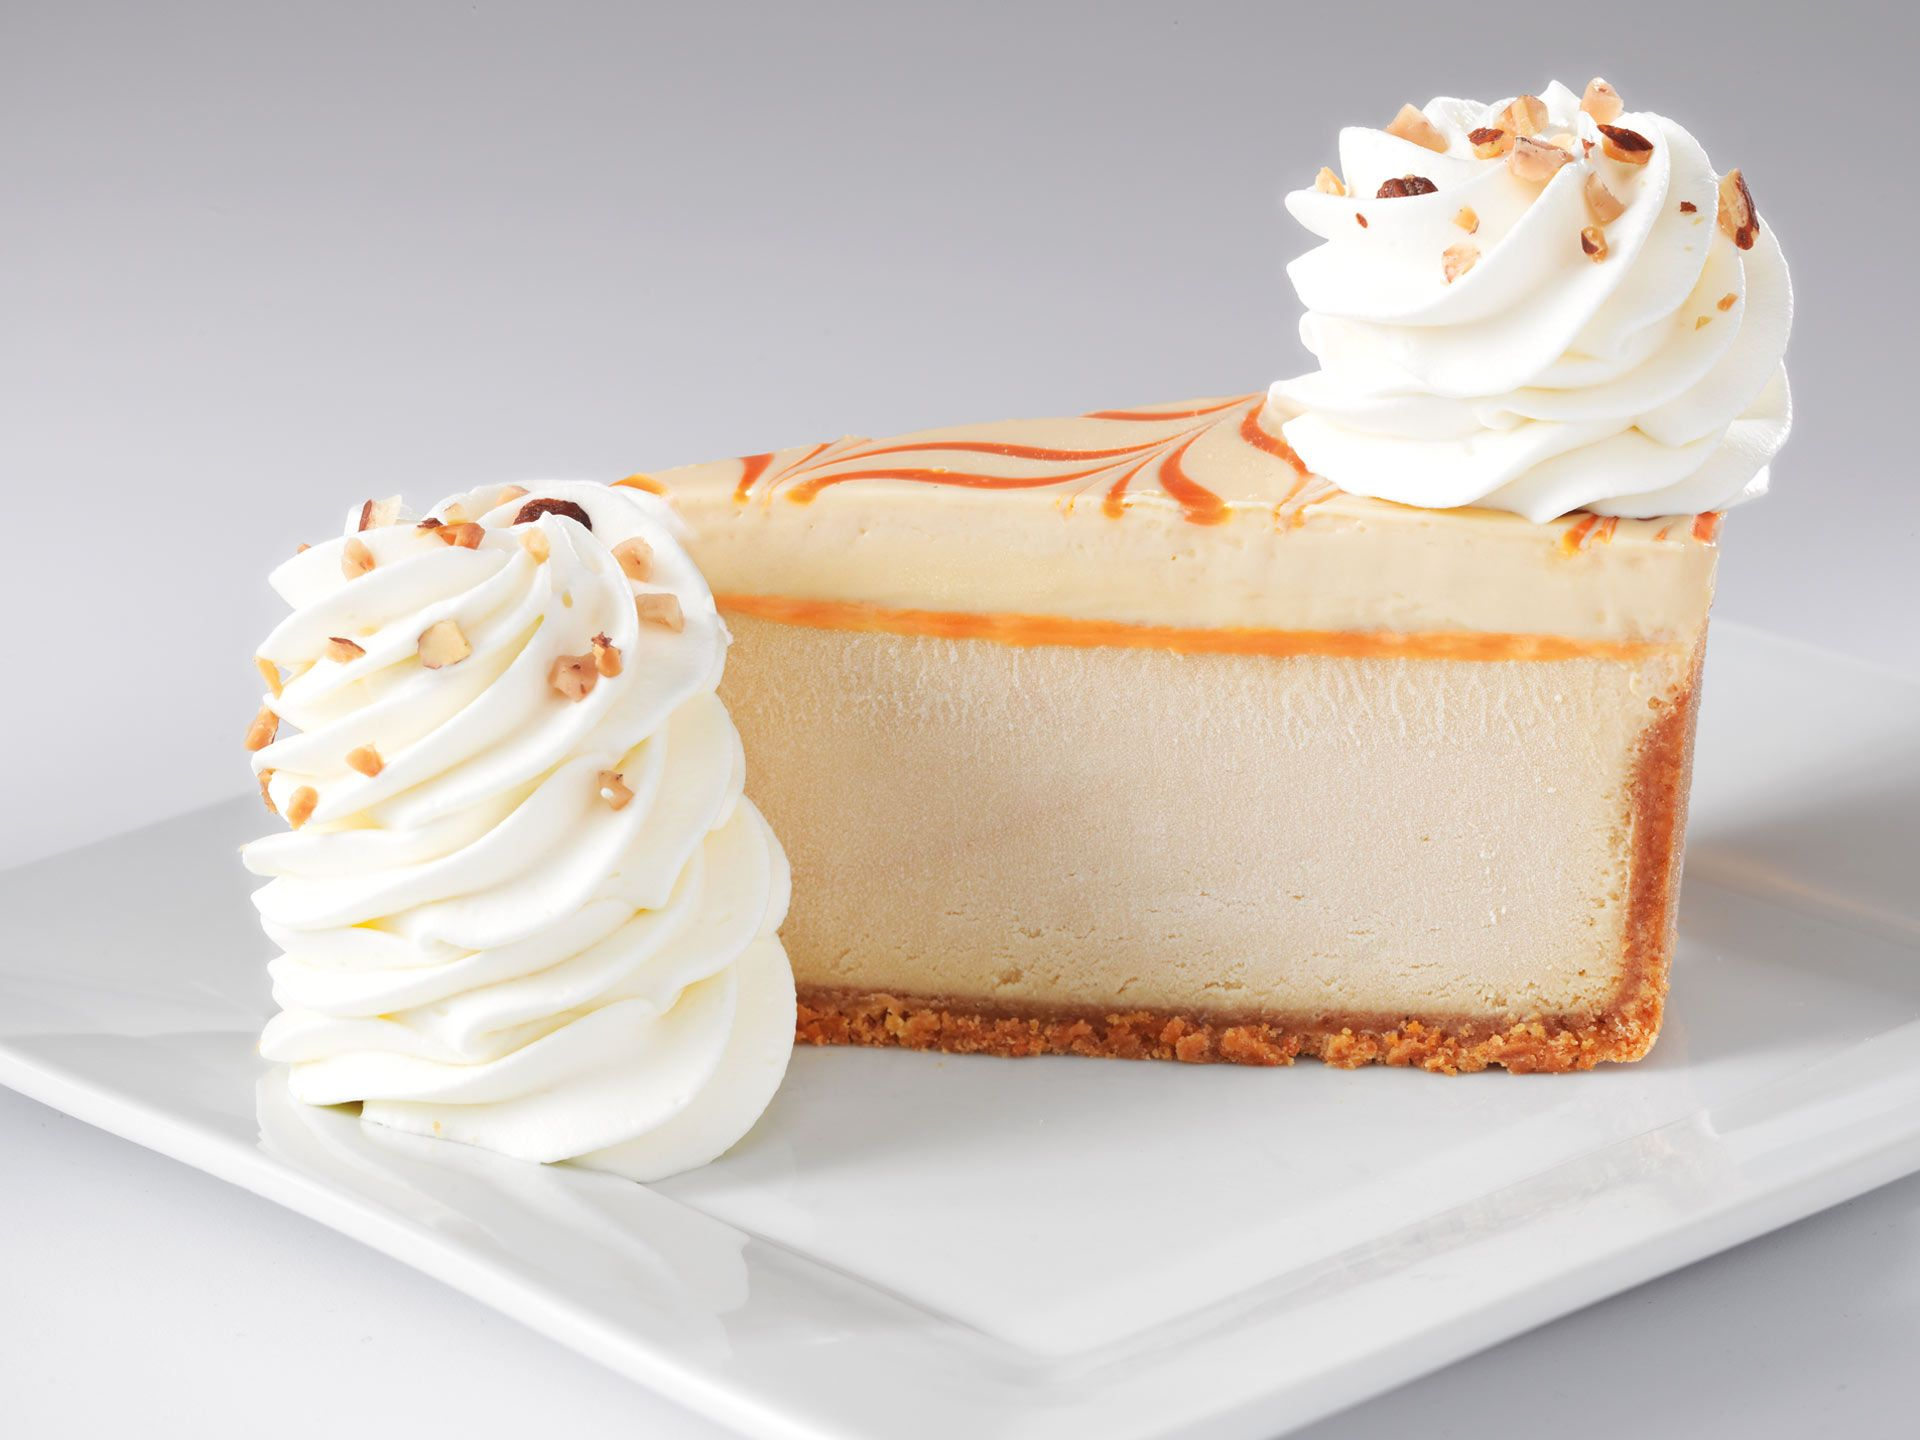 Dulce de Leche Caramel Cheesecake caramel cheesecake topped with caramel mousse on a vanilla crust